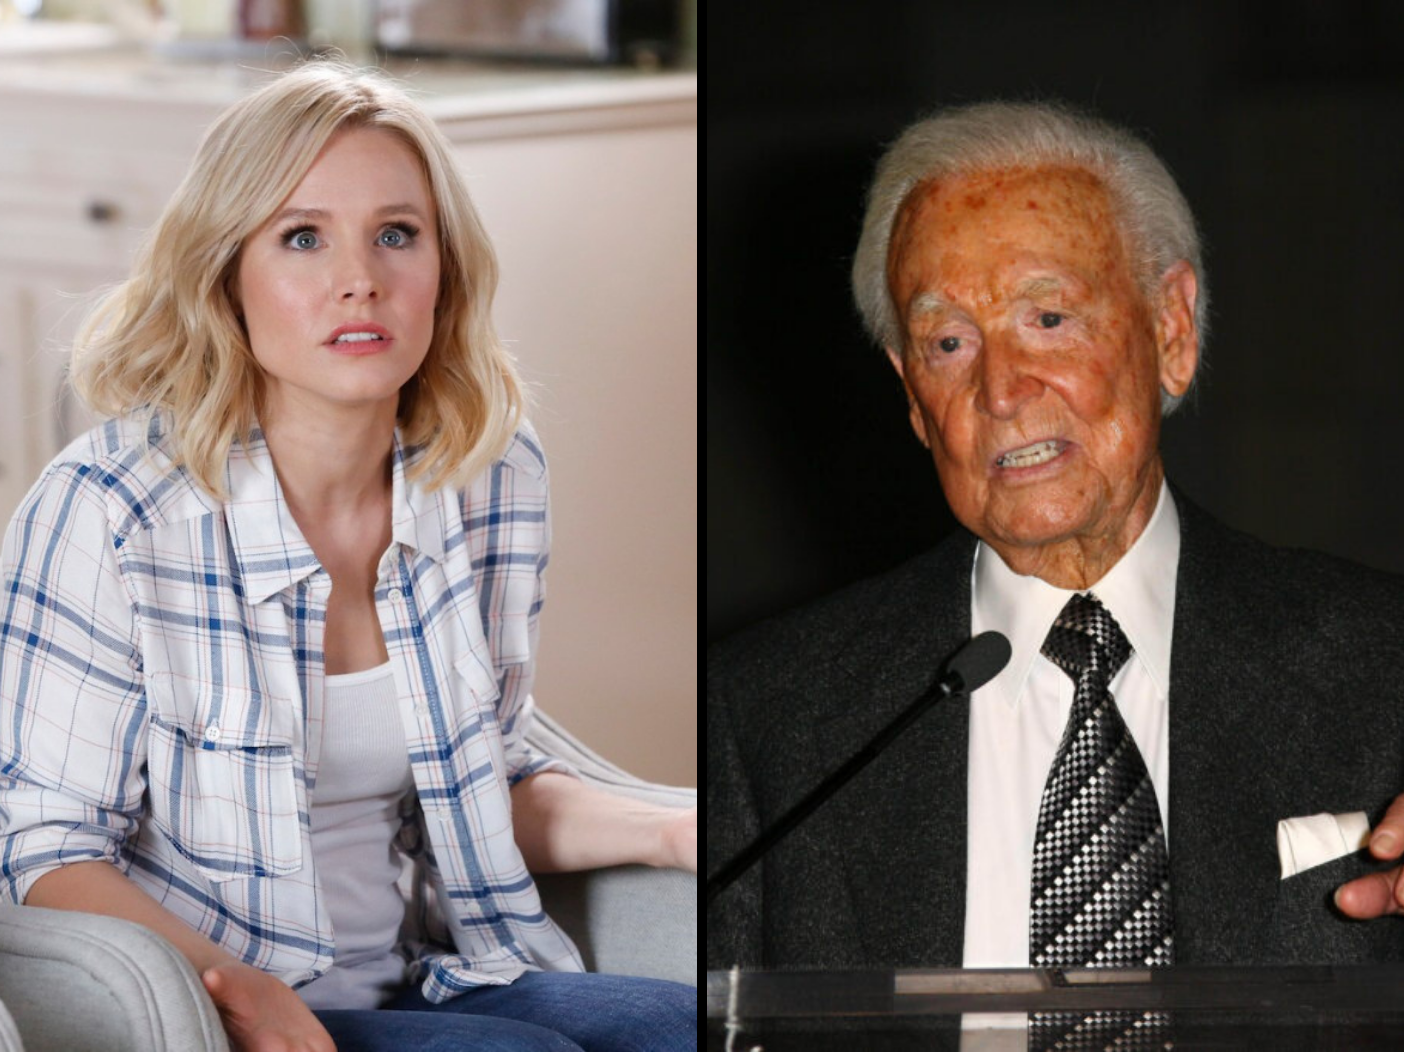 Troubling Photo Sparks Concern For Kristen Bell, Bob Barker 'Fading Away', And This Week's Celeb Health Reports